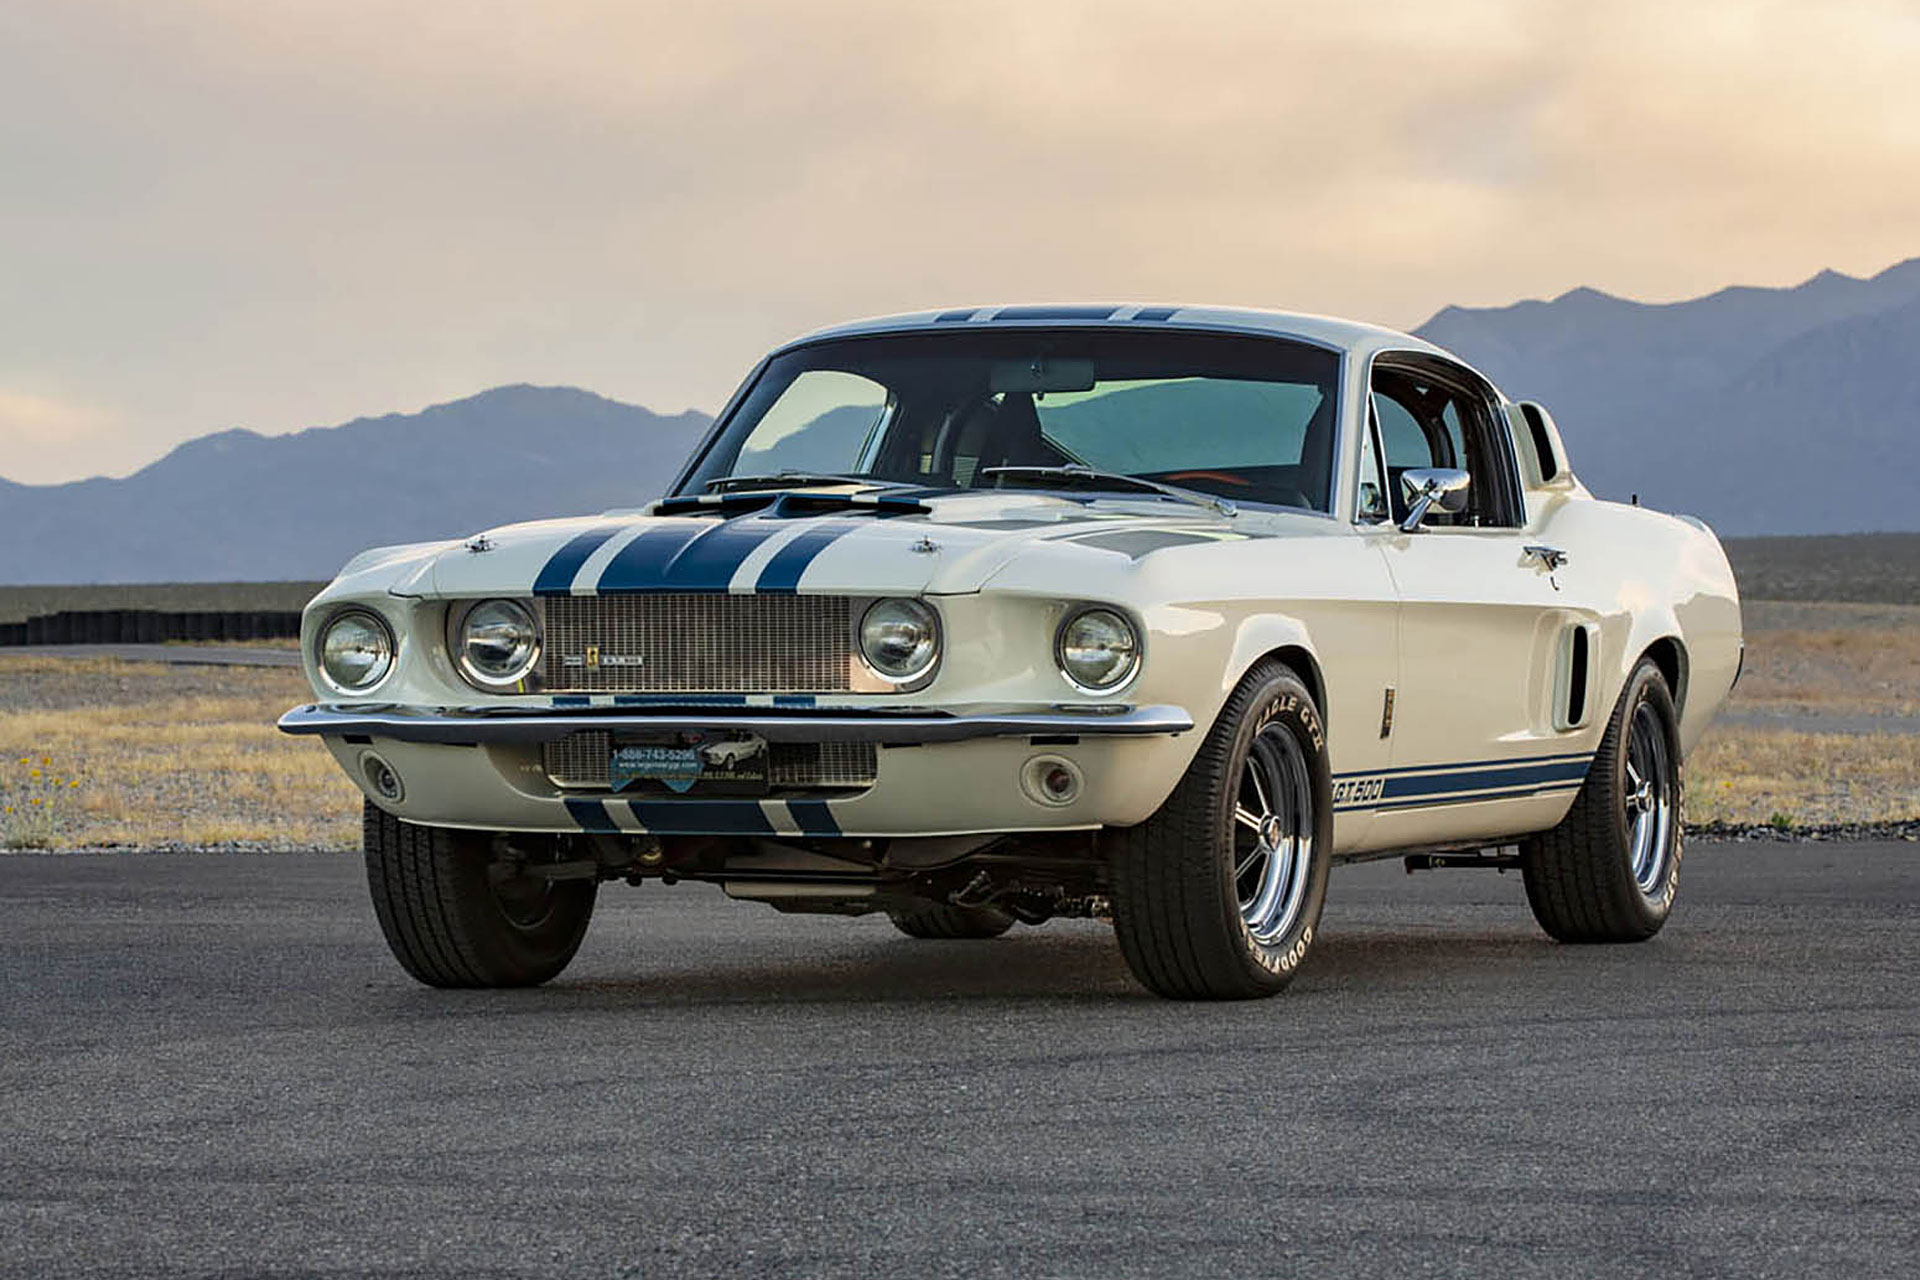 Ford Mustang Shelby Gt500 Super Snake Gebraucht